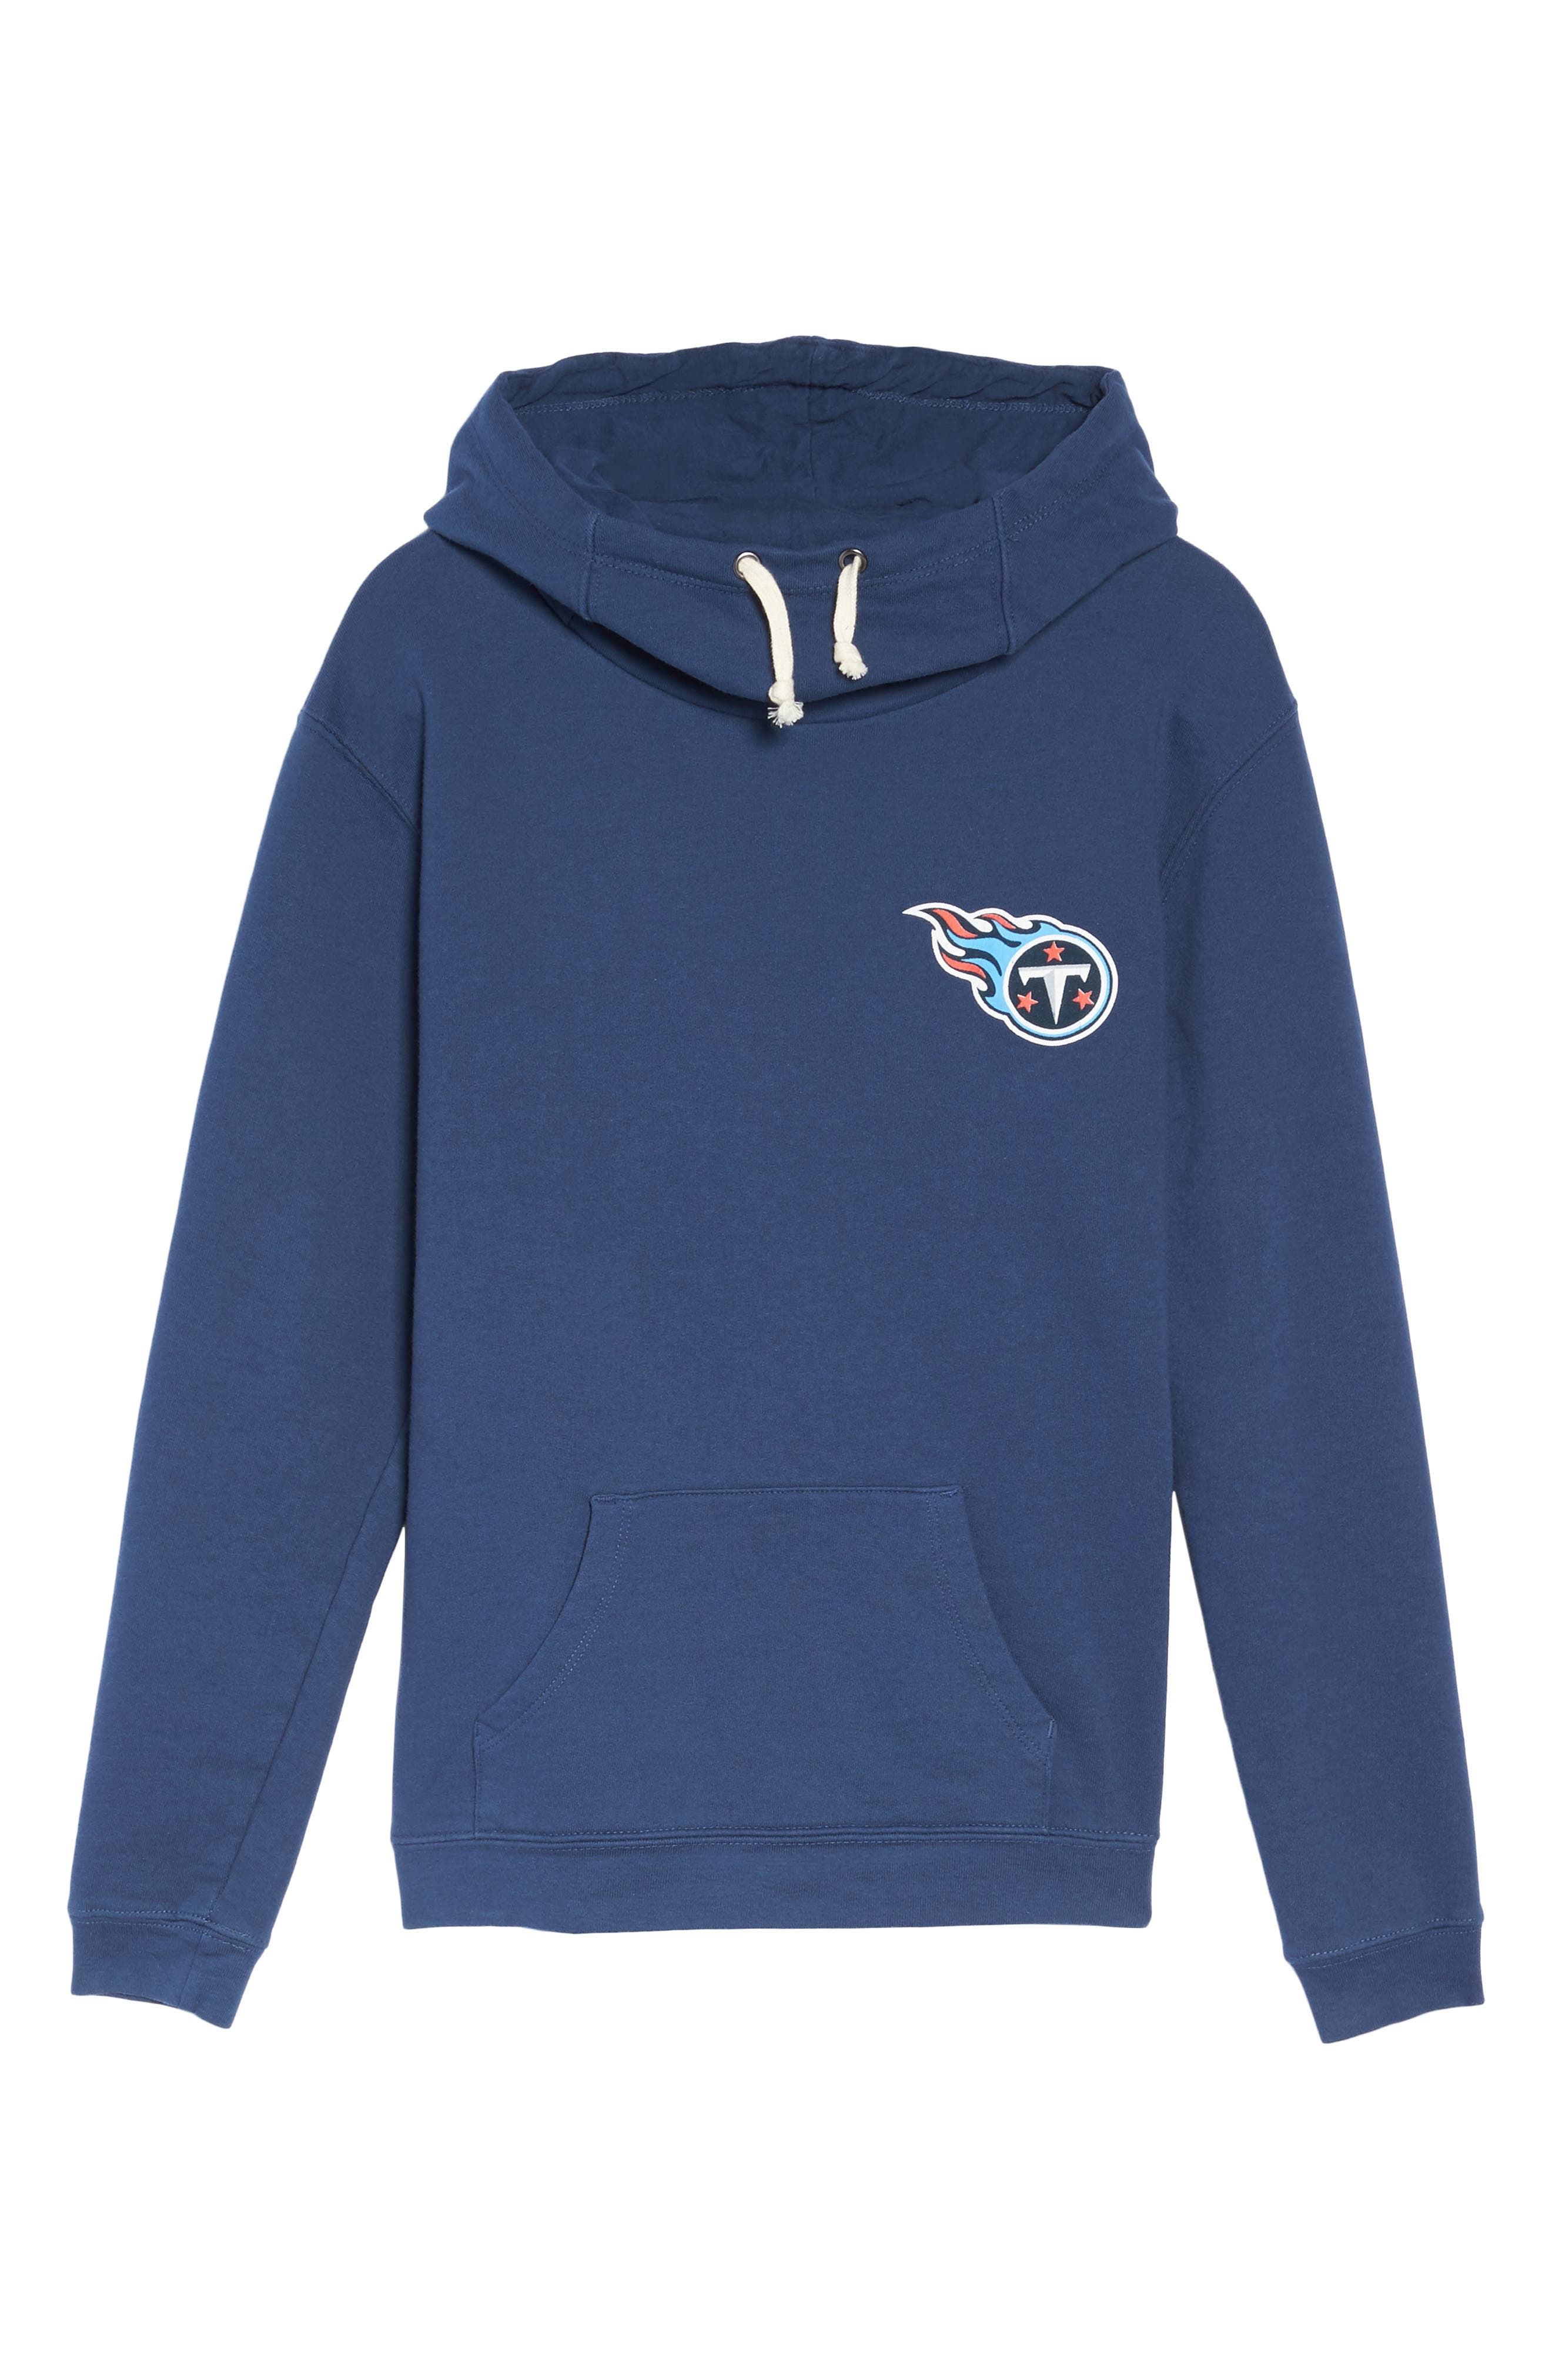 NFL Tennessee Titans Sunday Hoodie,                             Alternate thumbnail 4, color,                             True Navy